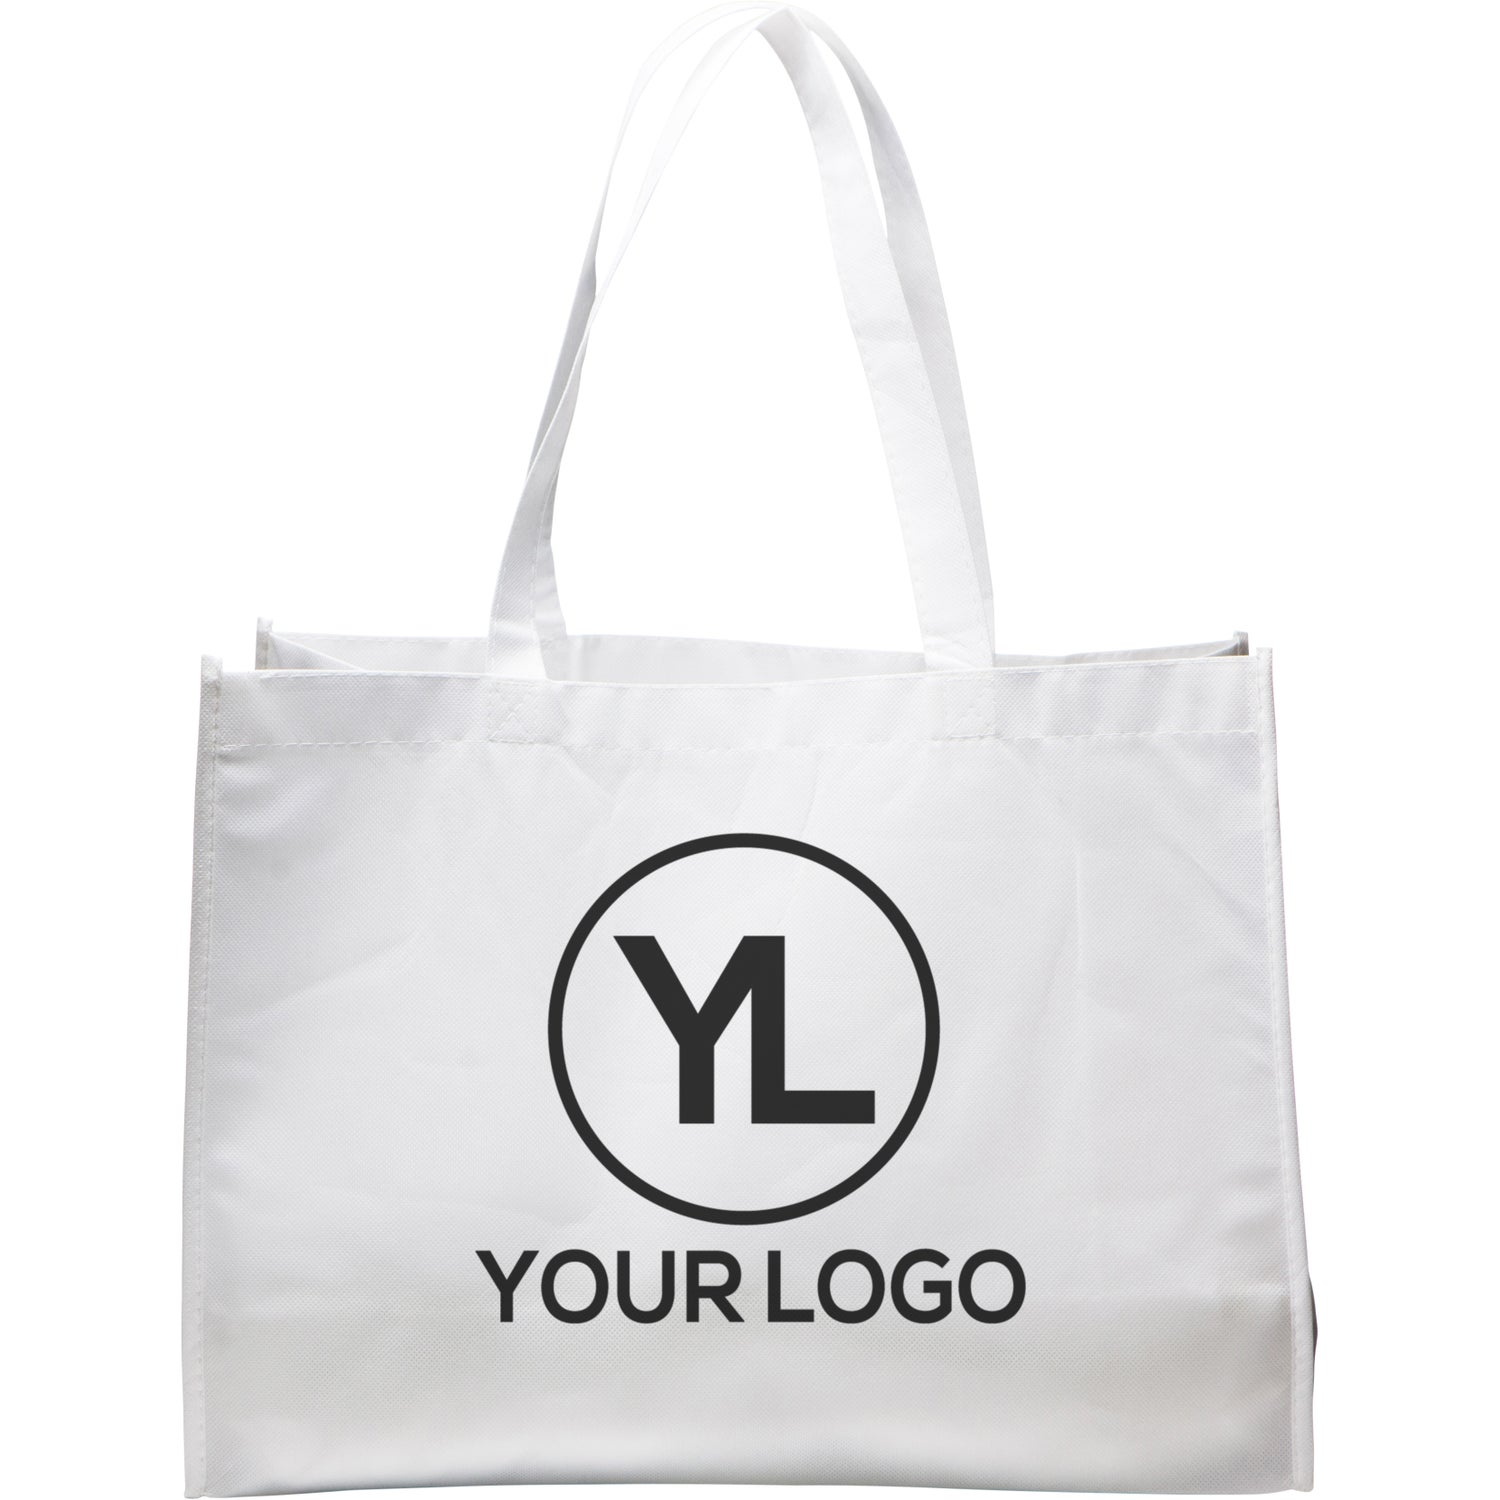 Promotional Medium Eco Friendly Non Woven Tote Bags With Custom Logo For 1 28 Ea